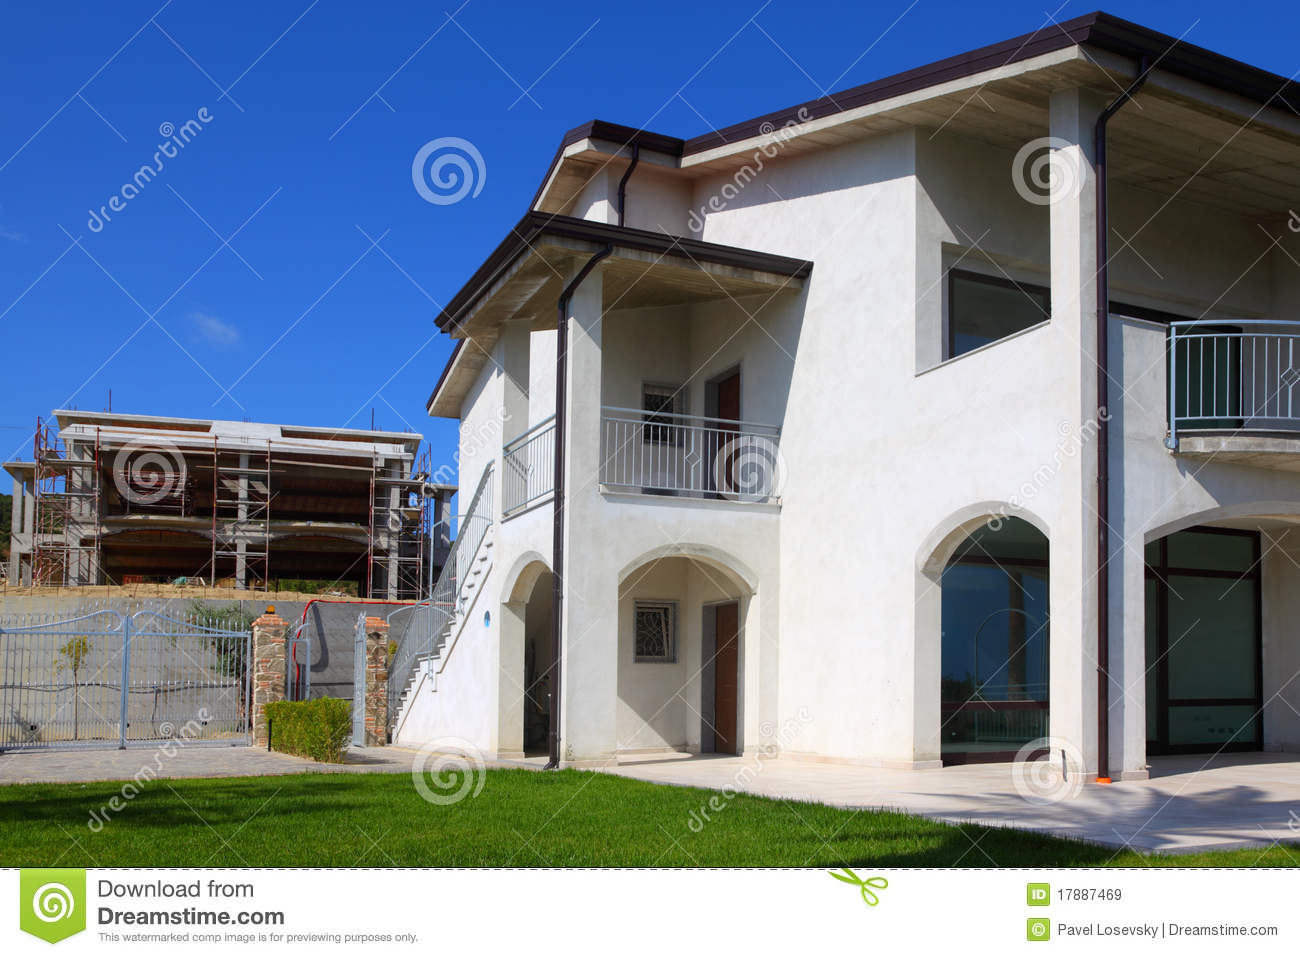 New two story house with garden stock image image 17887469 for New two story homes